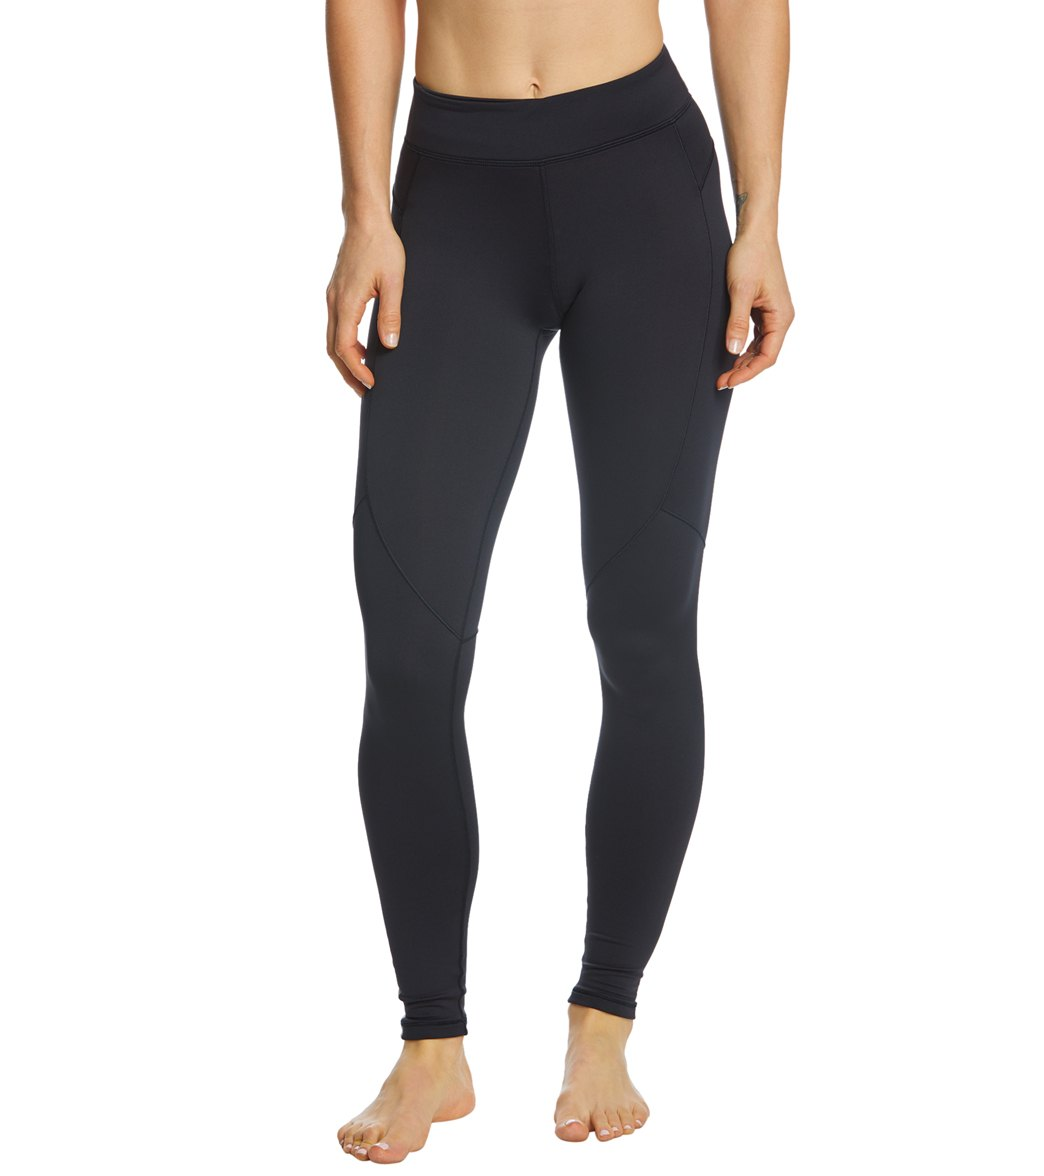 4bc2cf86c9 Under Armour Women's UA CG Armour Graphic Legging at SwimOutlet.com - Free  Shipping